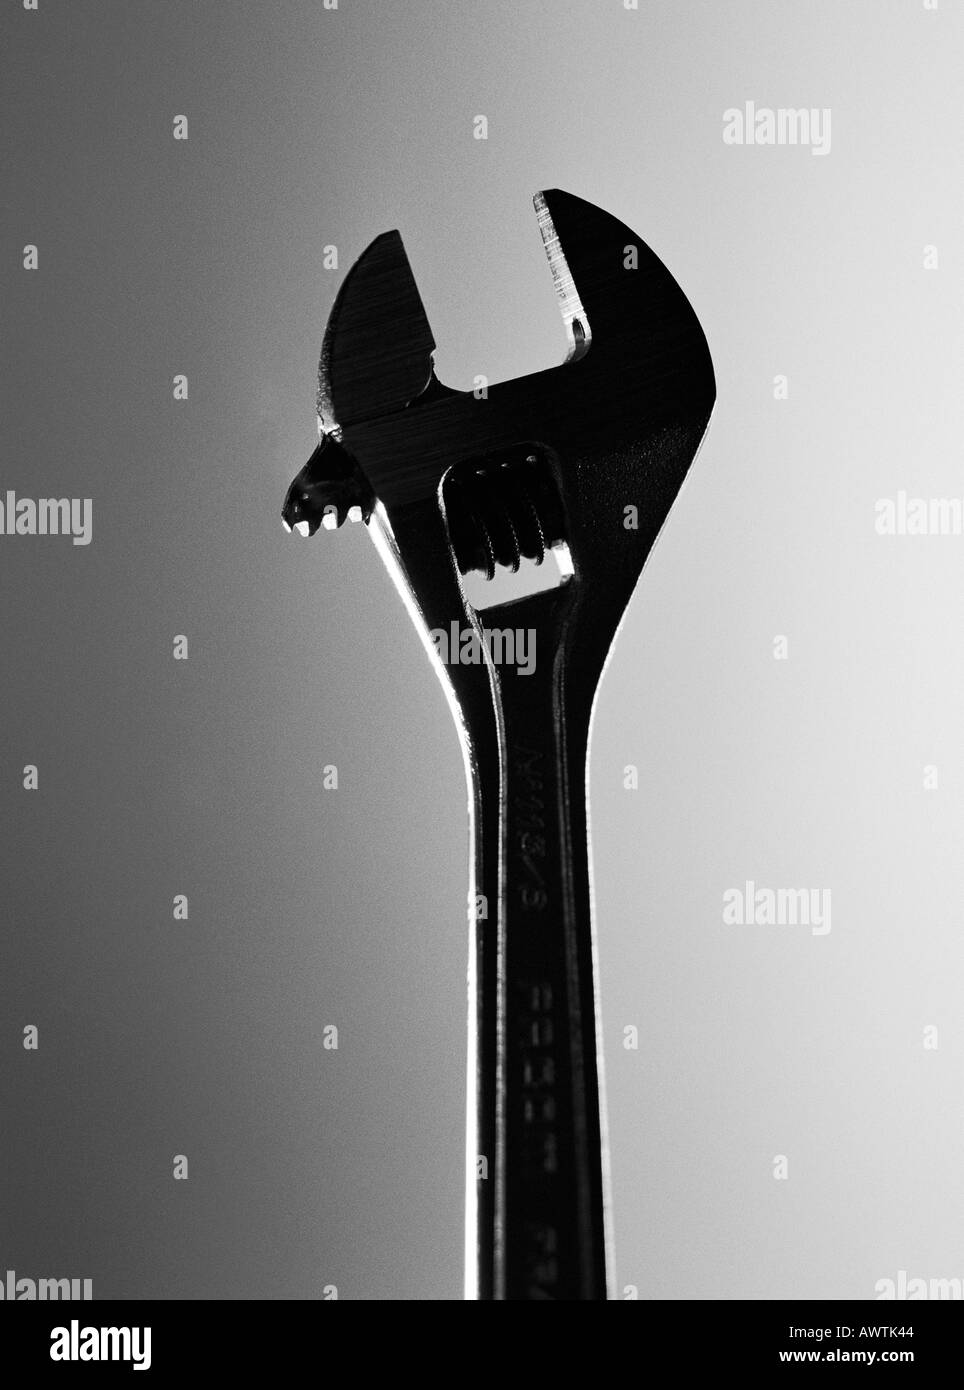 Adjustable wrench, close-up - Stock Image